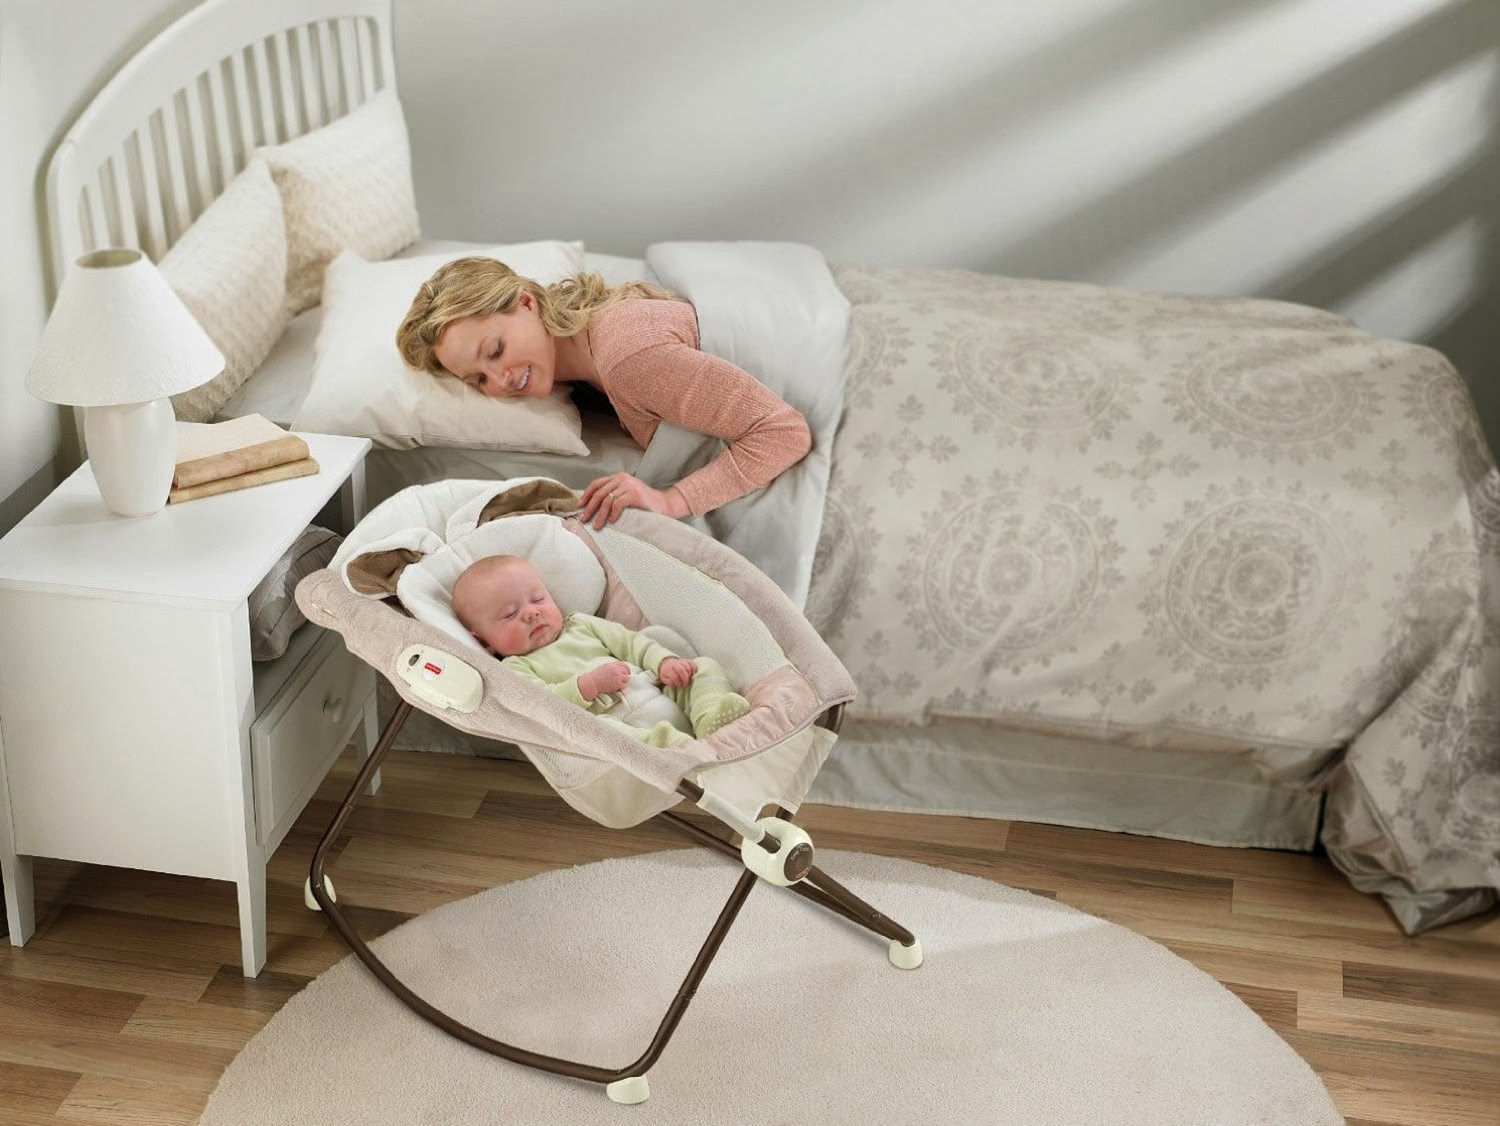 Get the Fisher-Price Deluxe Newborn Vibrating Rock n' Play Sleeper for $44.99 SHIPPED!! WOW!!!